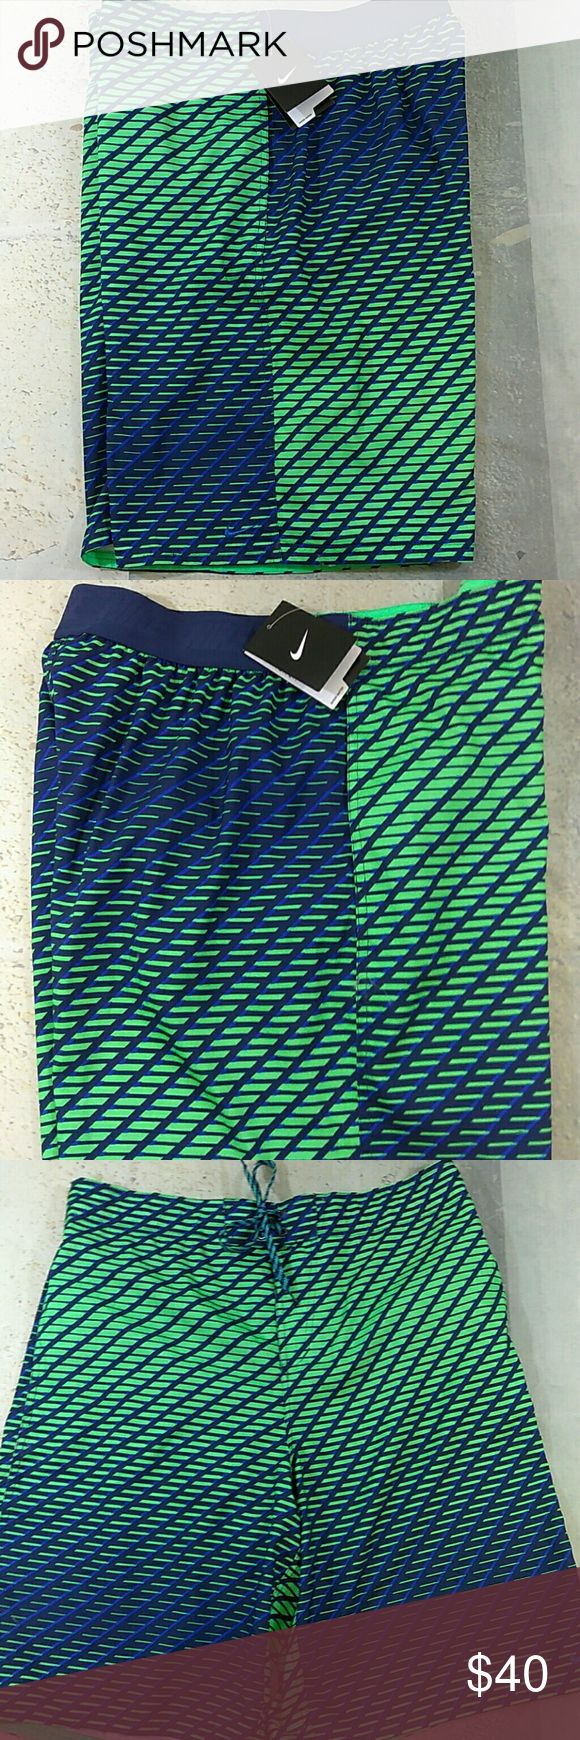 """Men's Nike Board Shorts Swim Trunks XL Men's Nike Board Shorts  Blue Green Size: XL  Waist: 36"""" (Unstretched) Inseam: 11""""  Mesh Brief  Back half has smooth elastic band  Tie Front, Side Pockets  New, with tags. Thank you! Nike Swim Board Shorts"""